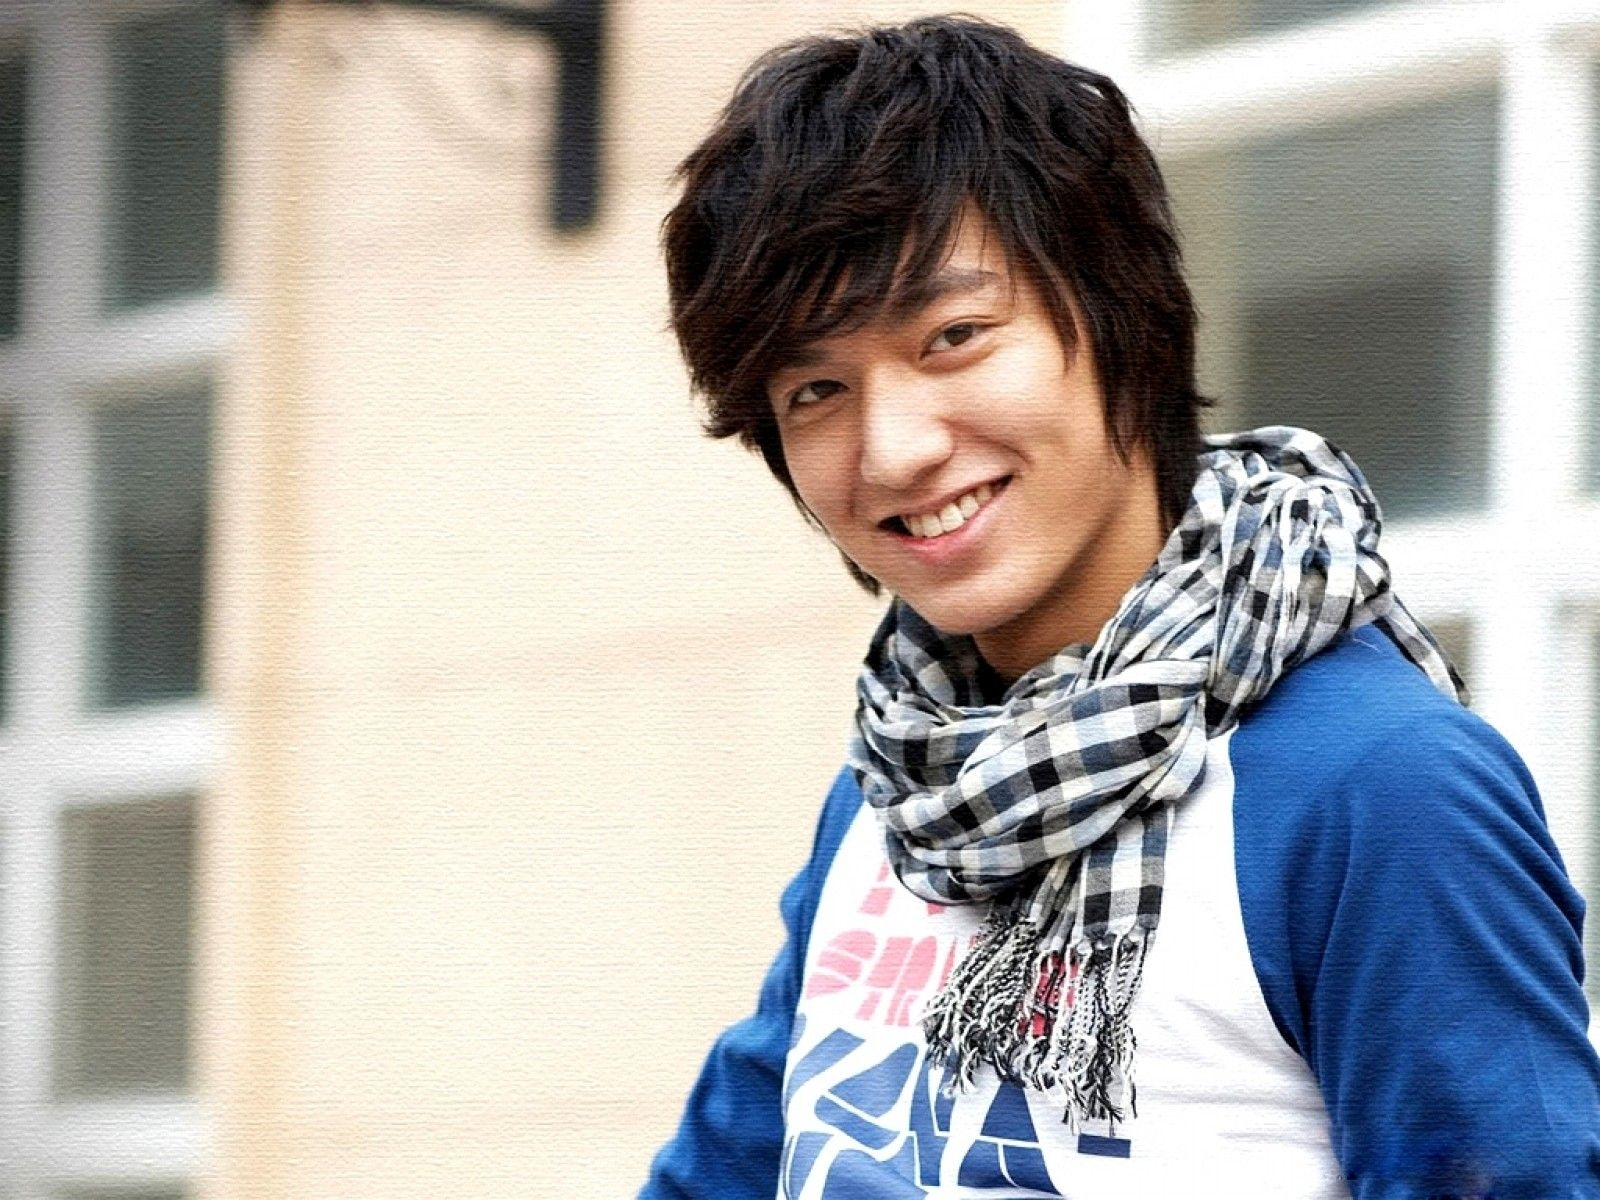 lee minho wallpaper full hd for free download on mobomarket | hd